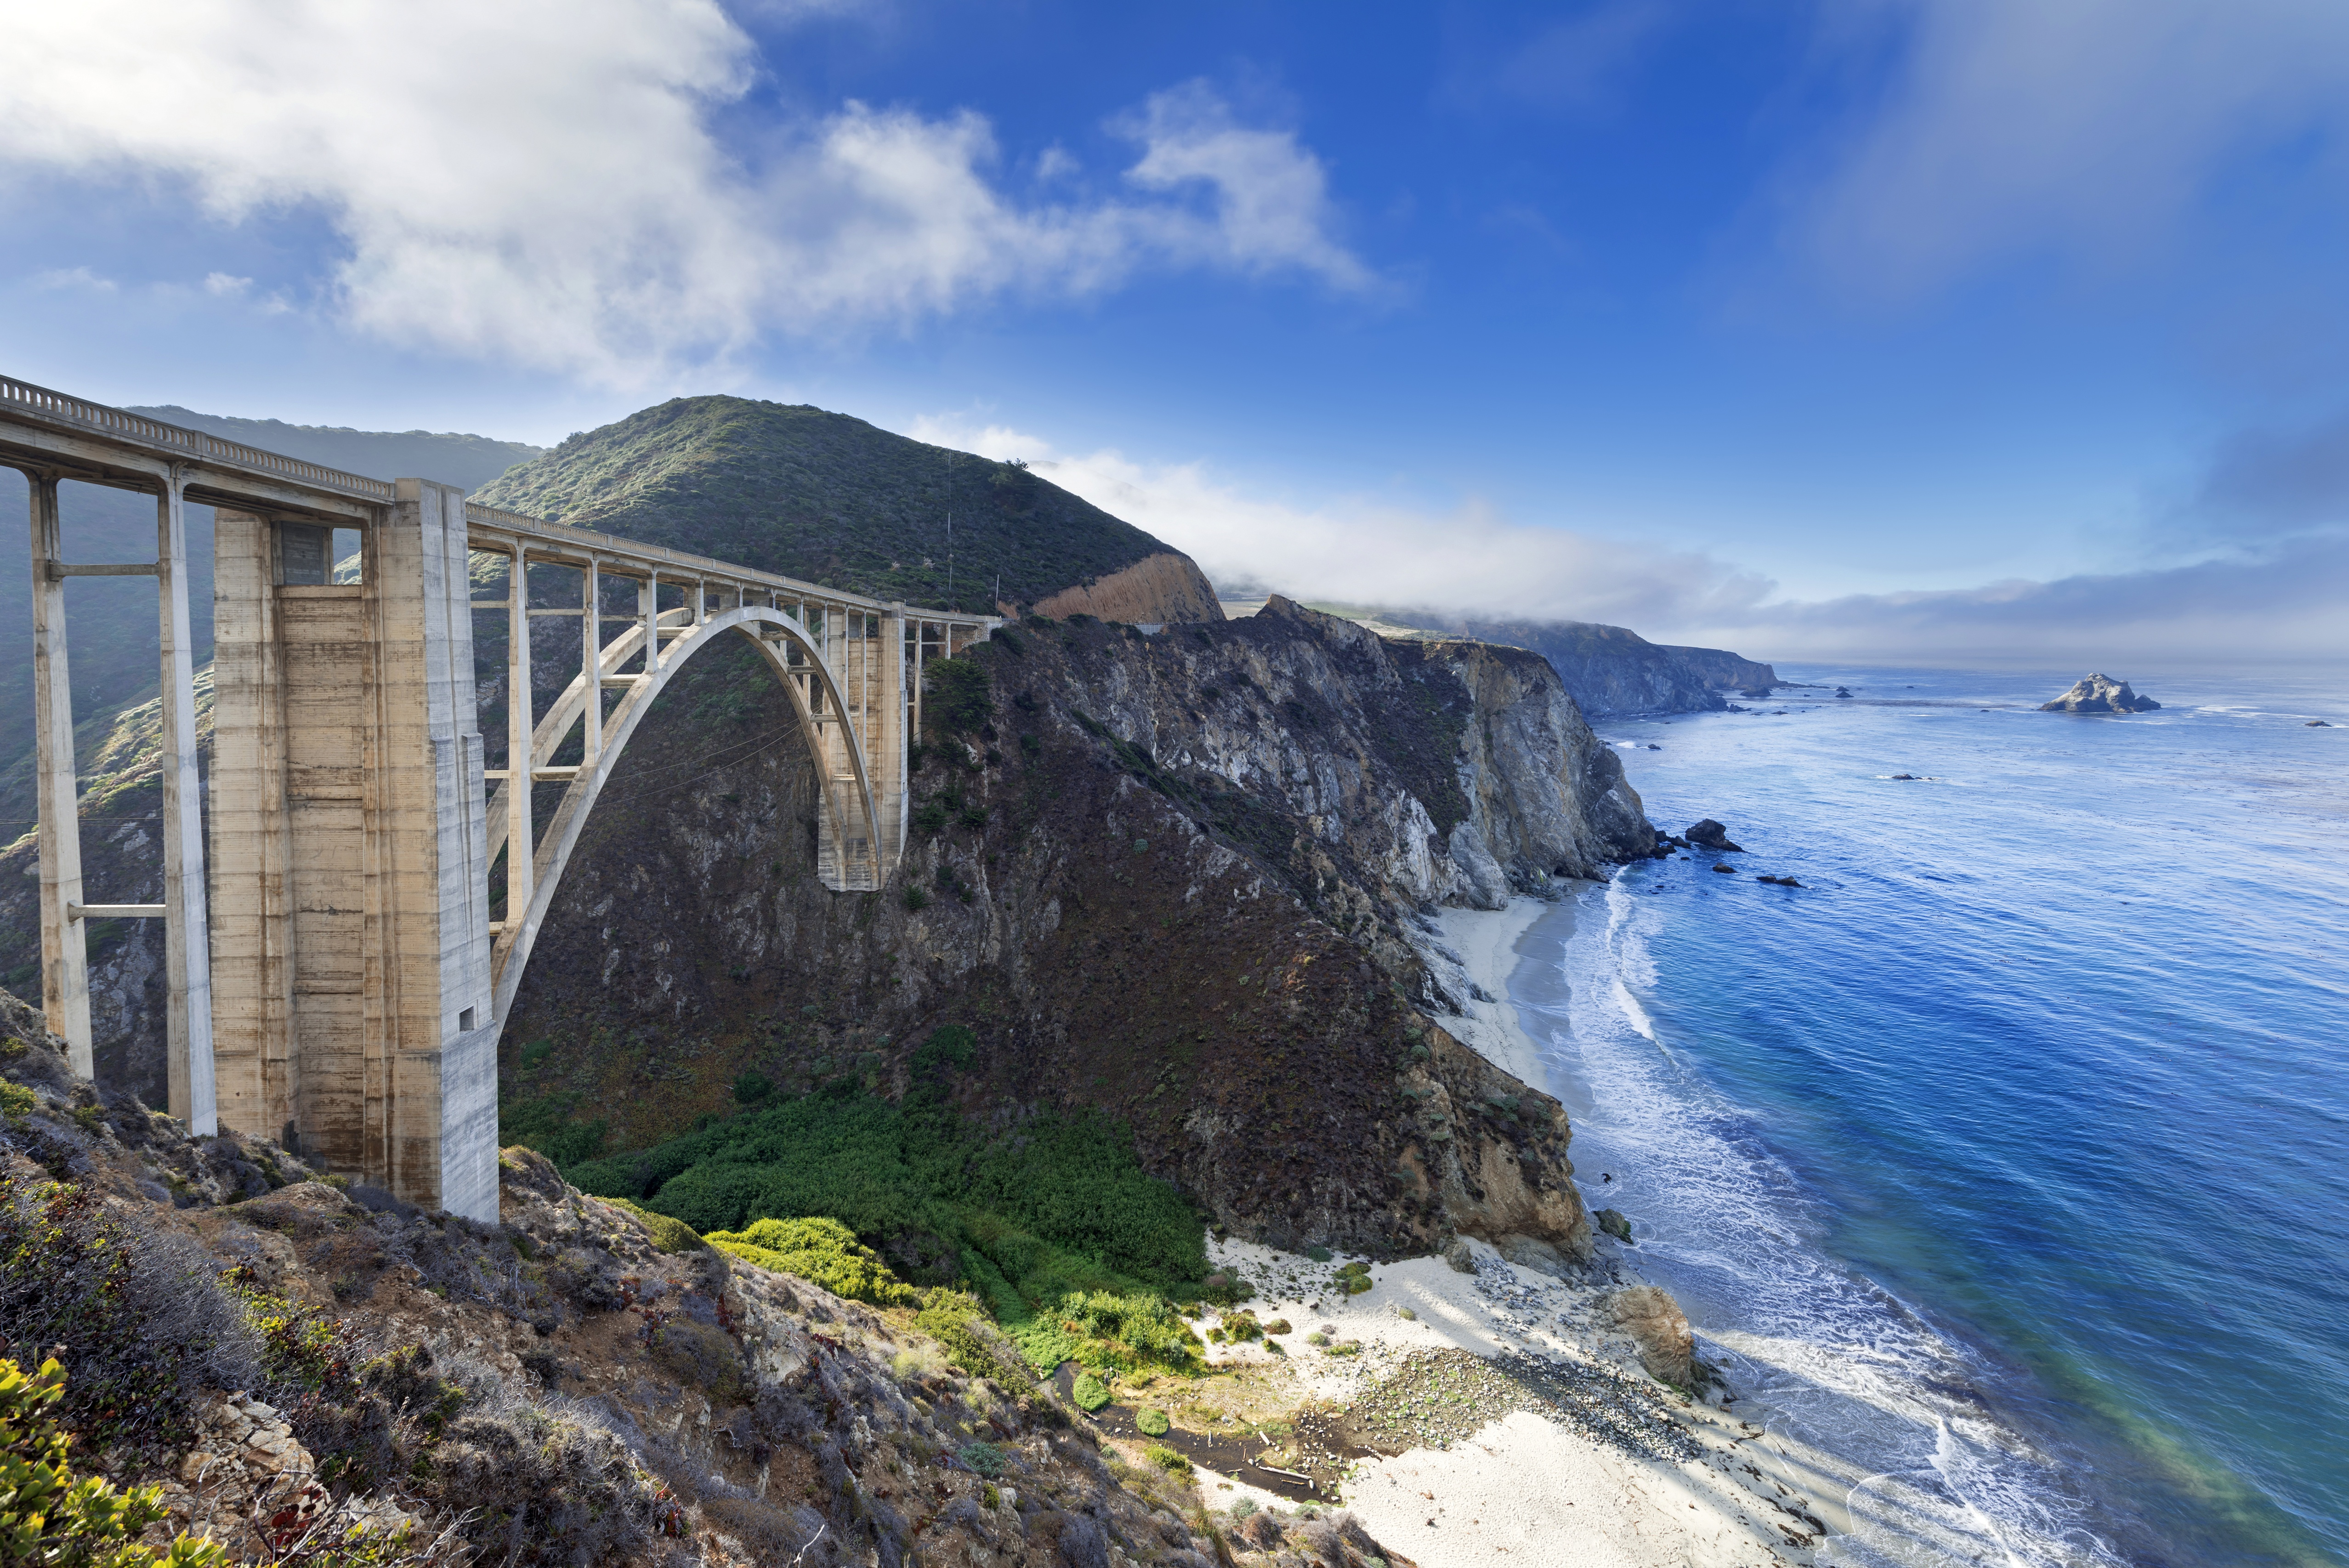 You've-Got-MAIDS-MAID-MOBILE-Crossing-California-Bixby-Bridge-in-Big-Sur.jpg